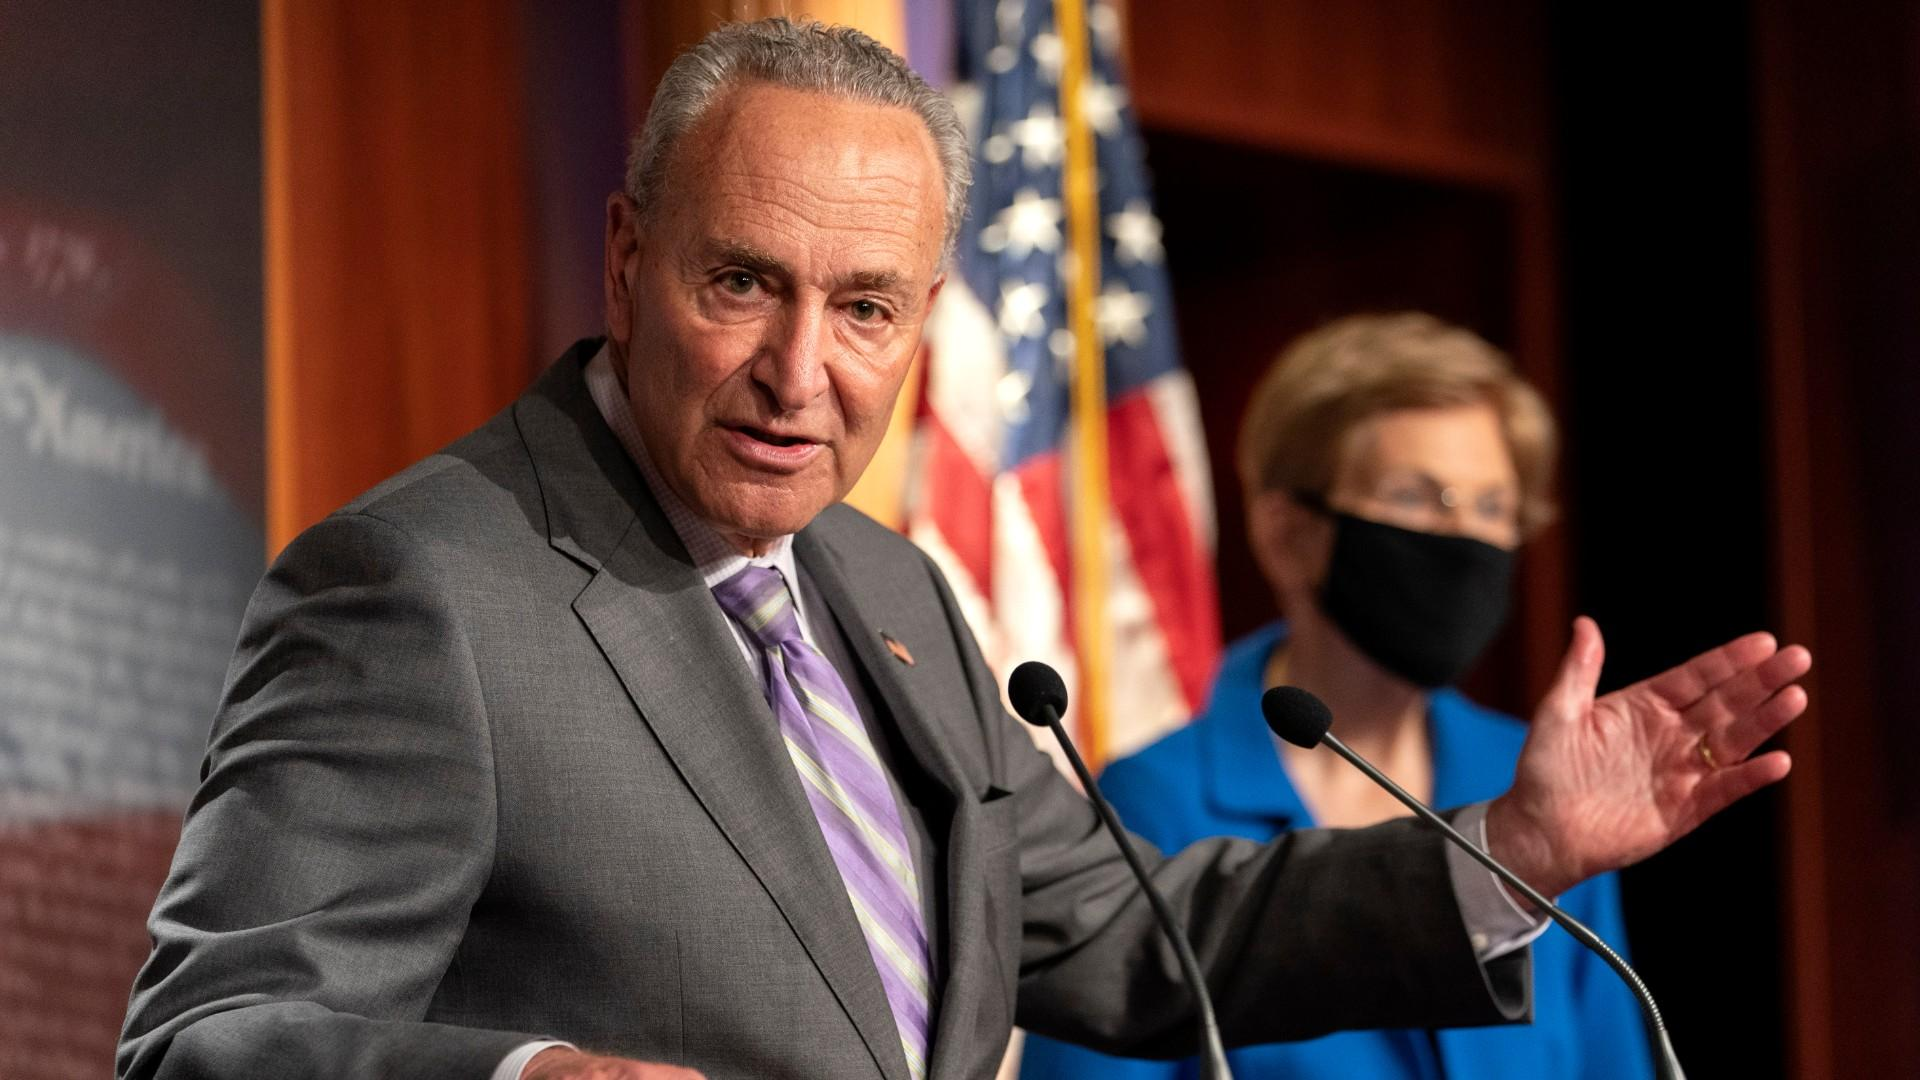 Senate Minority Leader Sen. Chuck Schumer of N.Y., left, with Sen. Elizabeth Warren, D-Mass., speaks during a news conference, Wednesday, Sept. 9, 2020, on Capitol Hill in Washington. (AP Photo / Jacquelyn Martin)